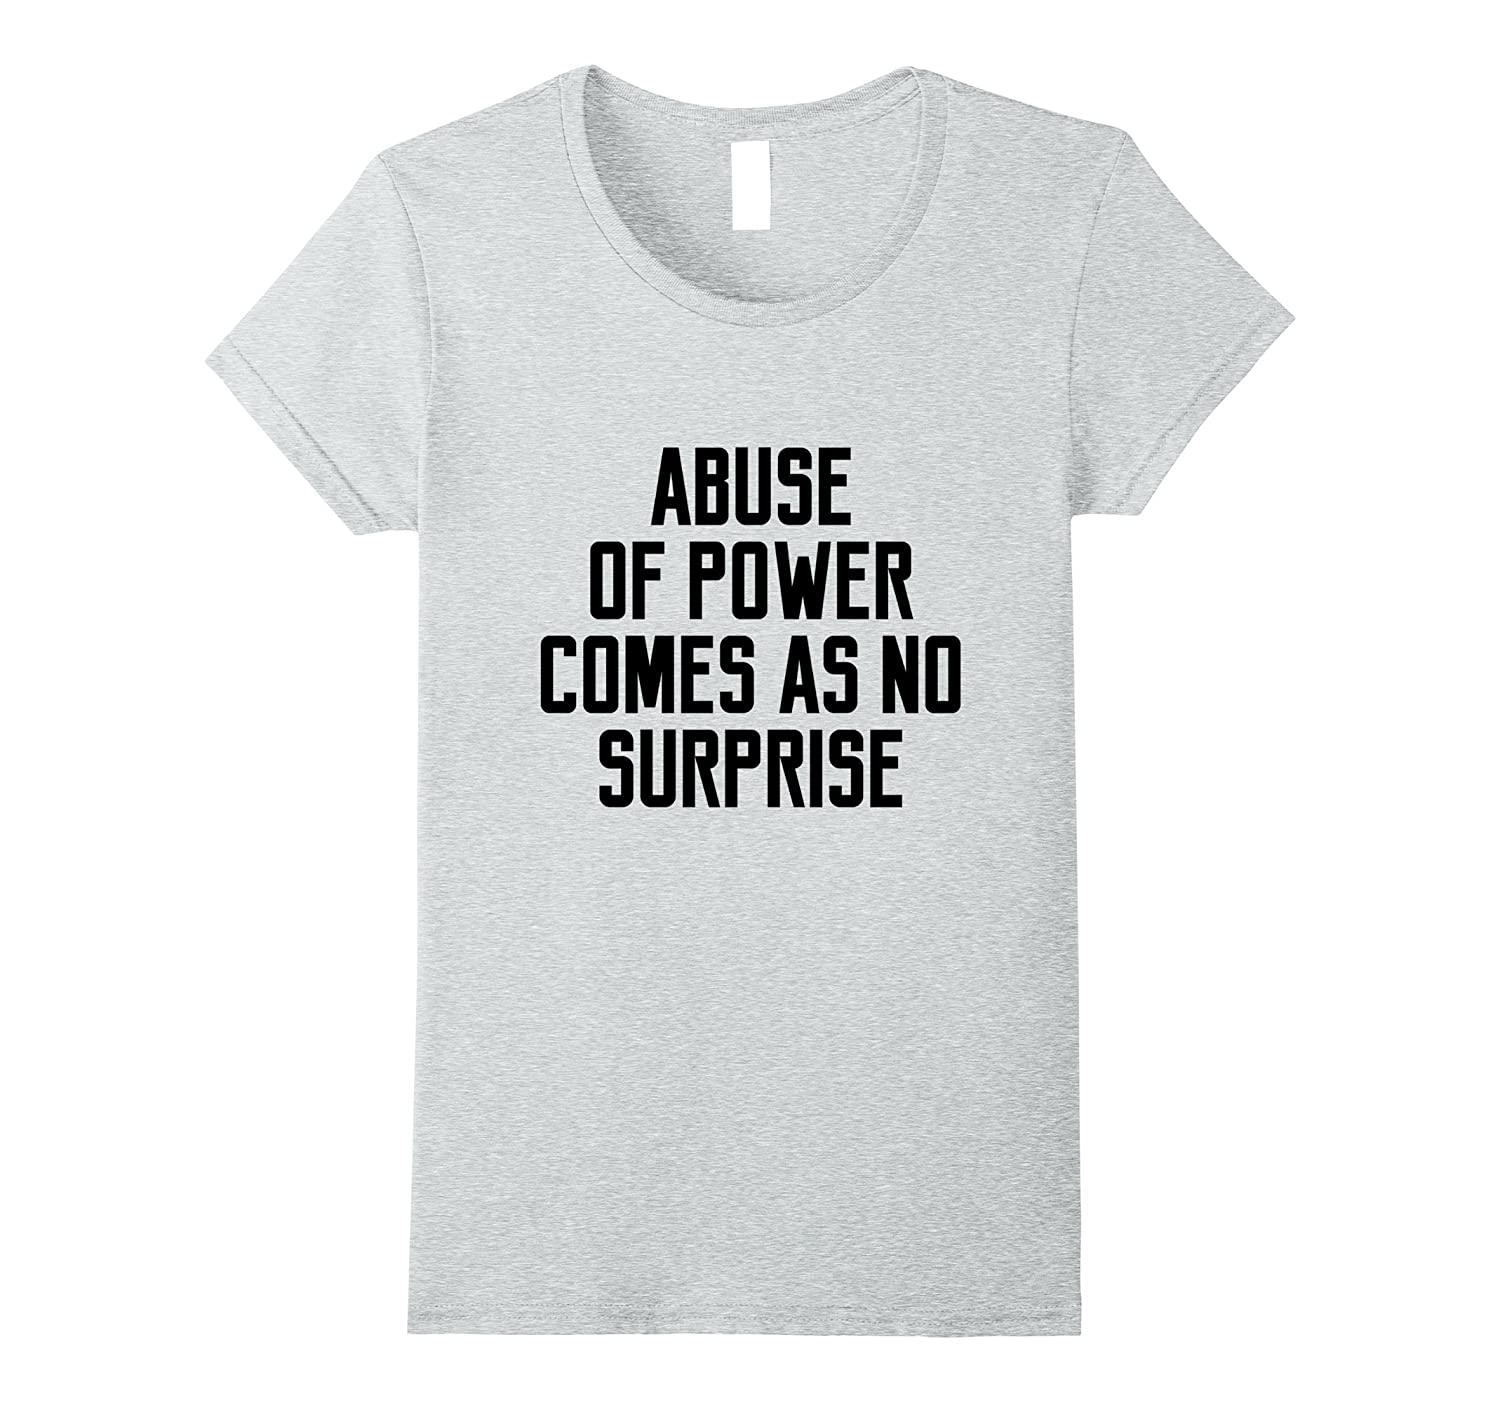 Abuse Of Power Comes As No Surprise Women Feminism T-Shirt